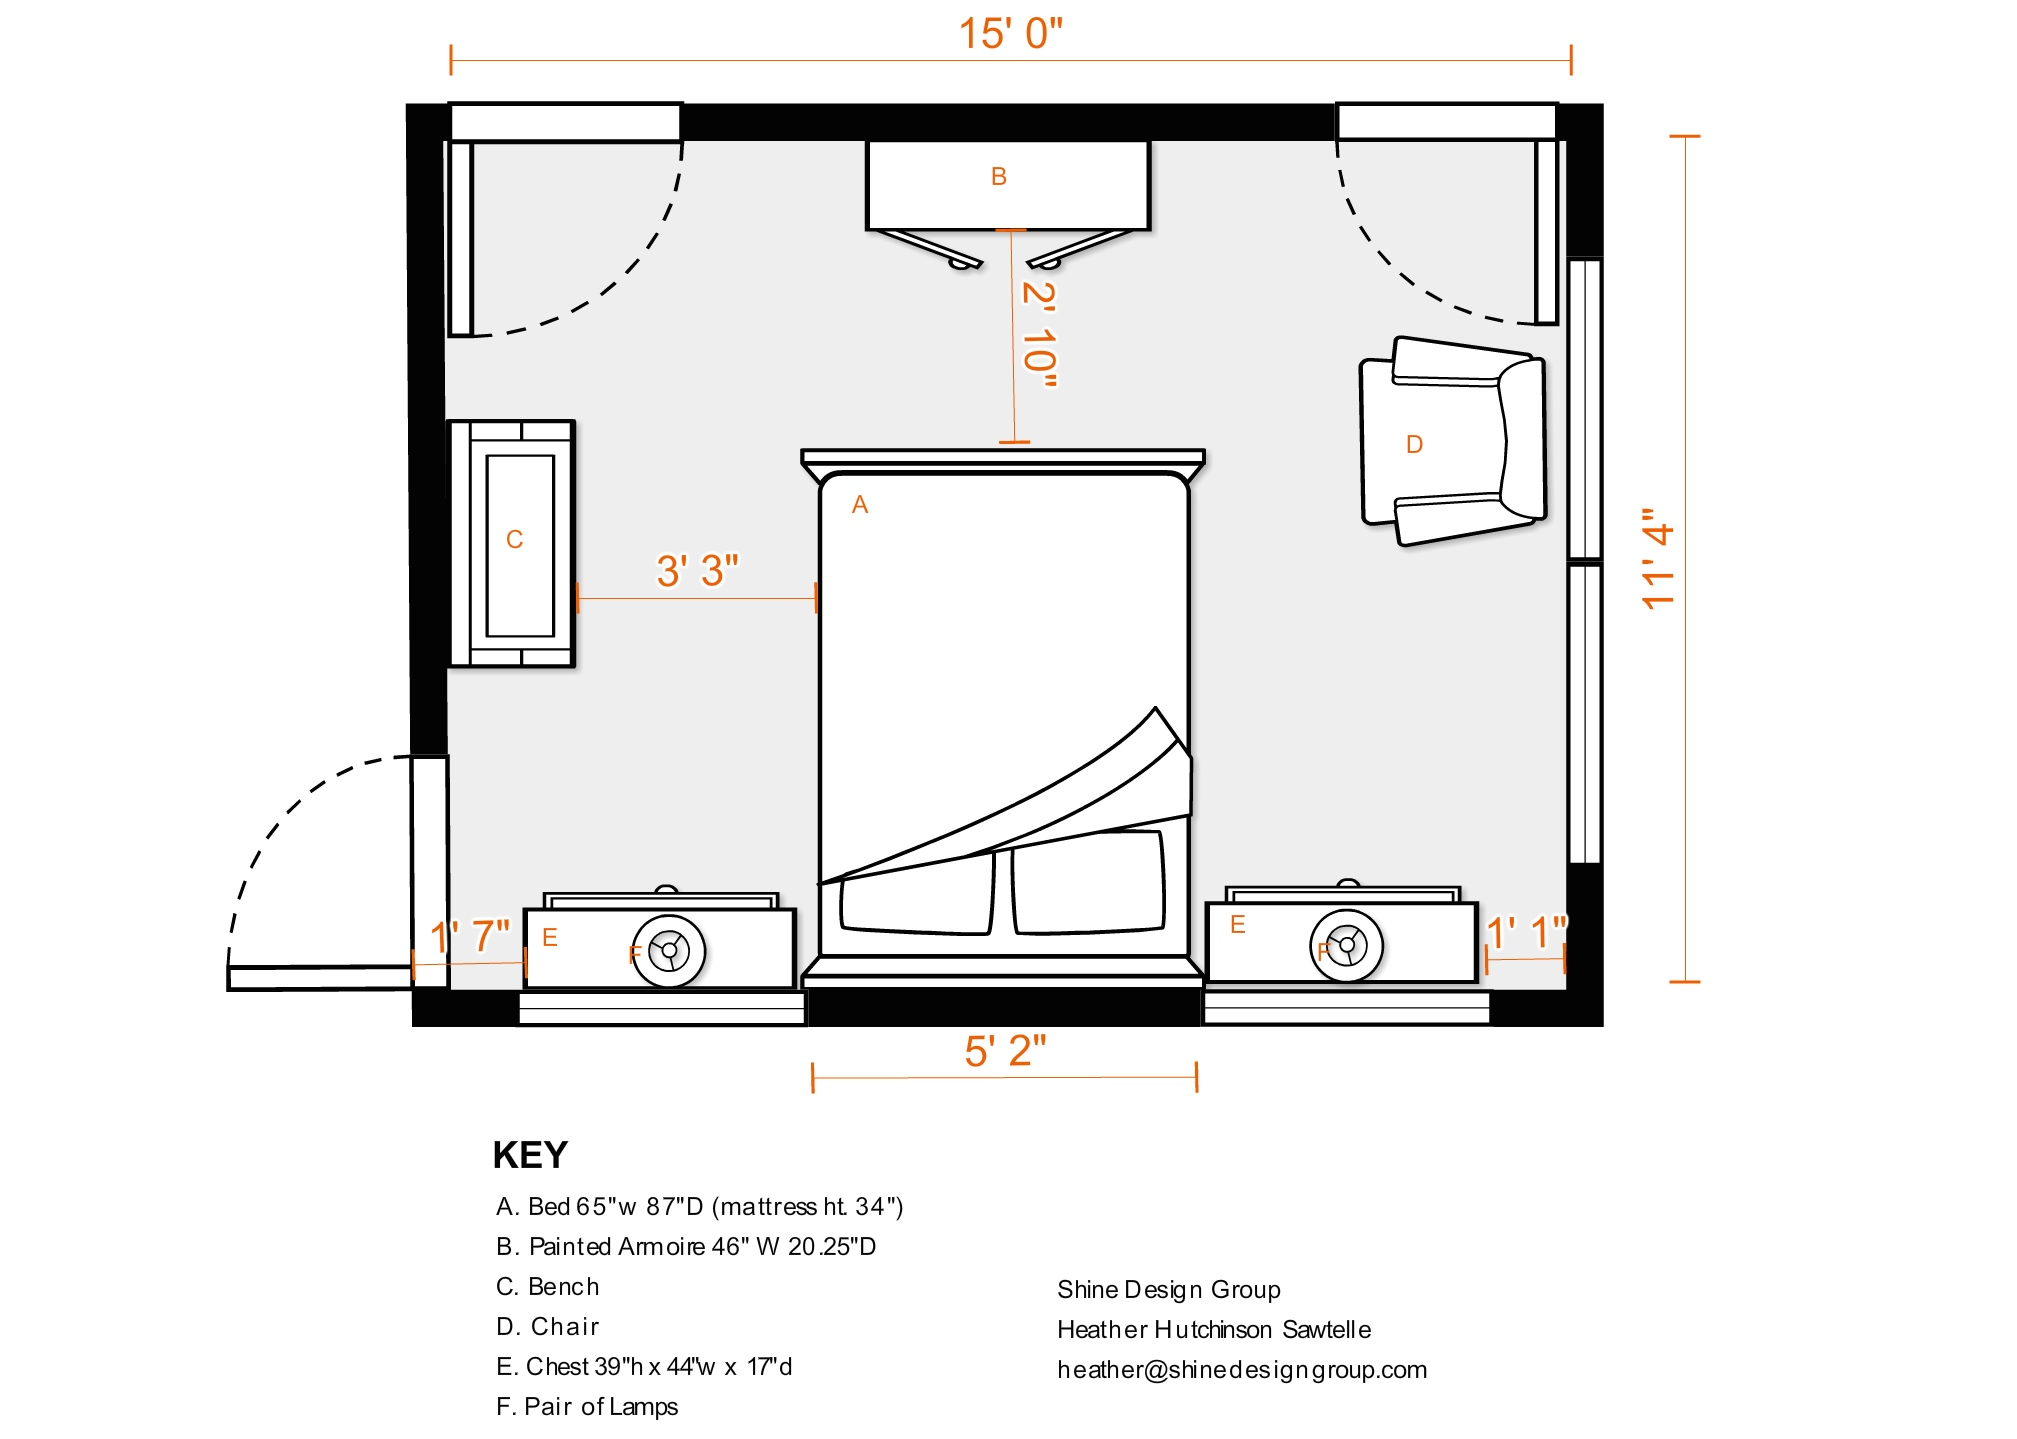 master bedroom floor plan.jpg